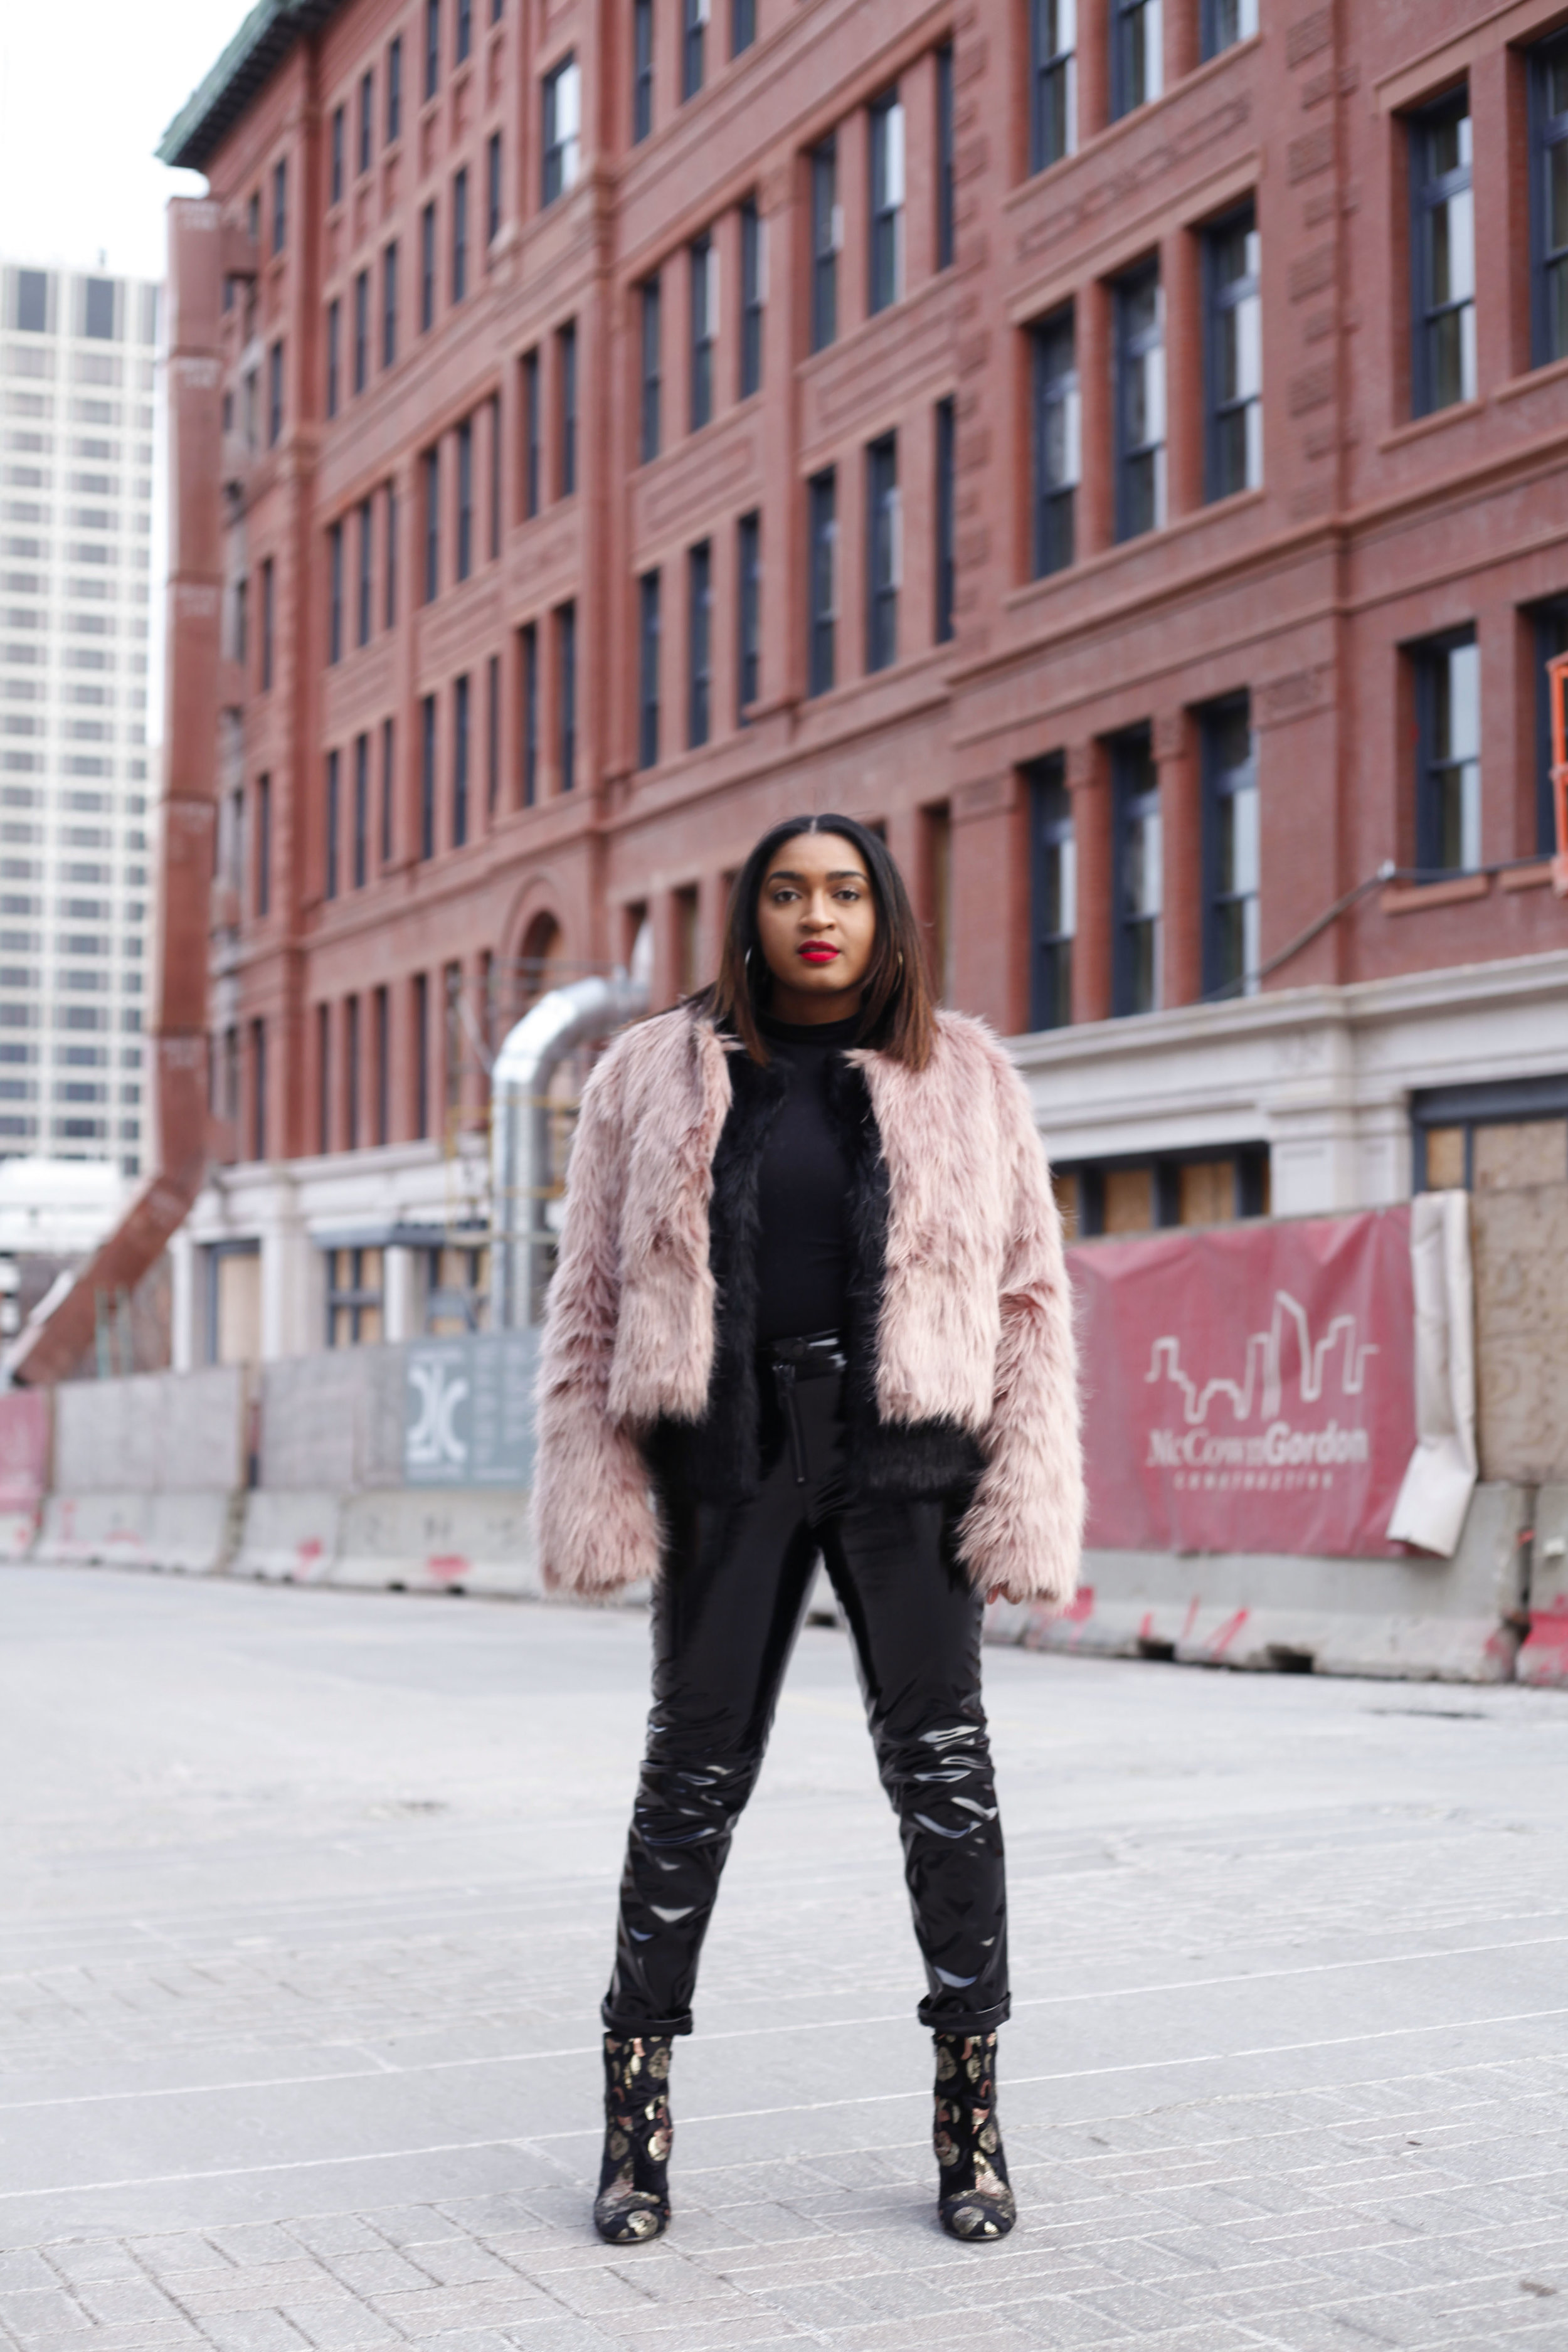 Steven G. Photography takes high fashion image of jasmine diane in downtown kansas city